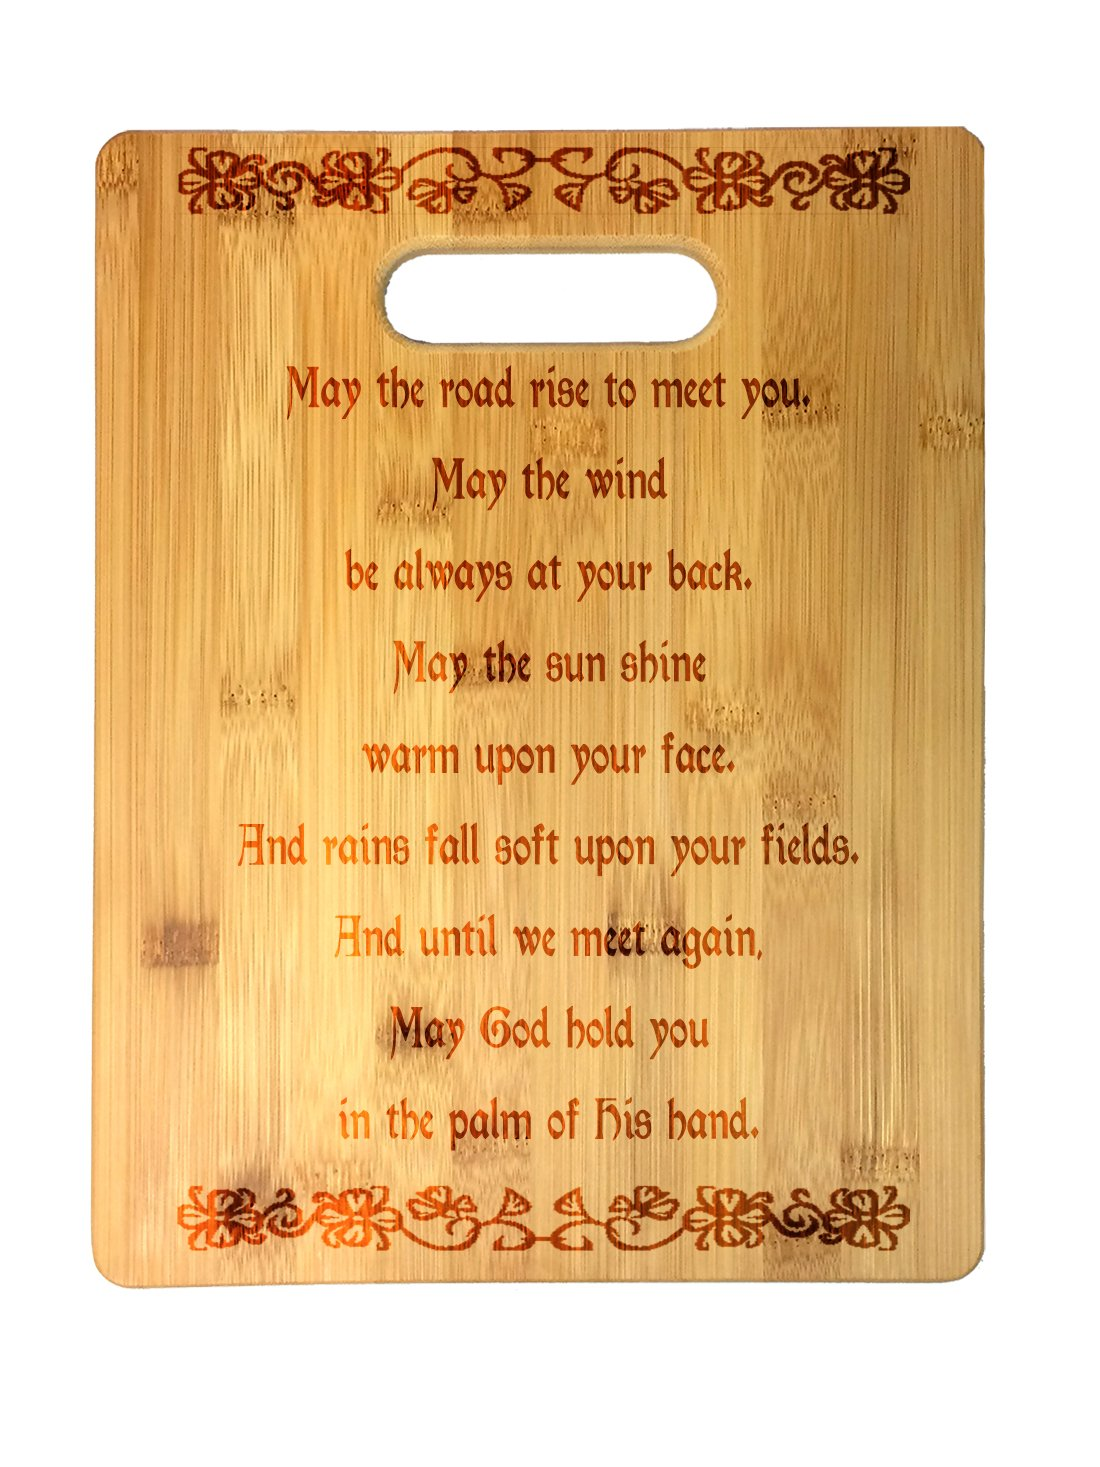 Irish Blessing Prayer May the Road Rise Up Celtic Knot Laser Engraved Bamboo Cutting Board - Wedding, Housewarming, Anniversary, Birthday, St. Patrick's Day, Gift